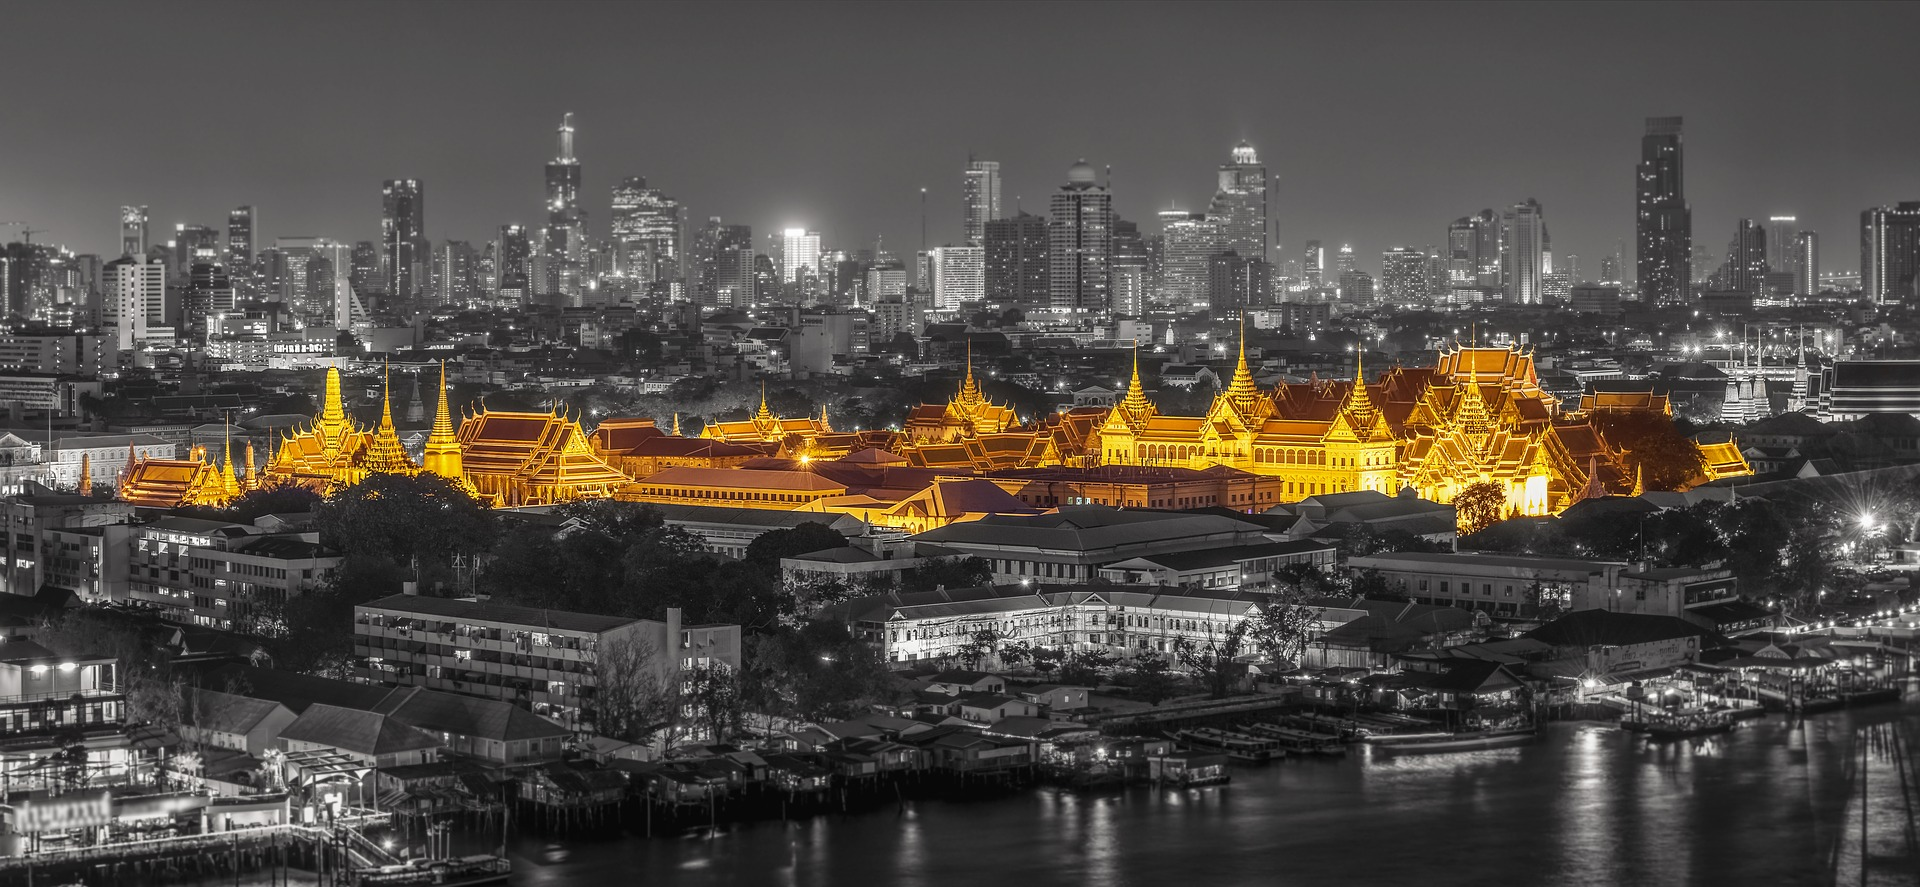 temple in the heart of bangkok